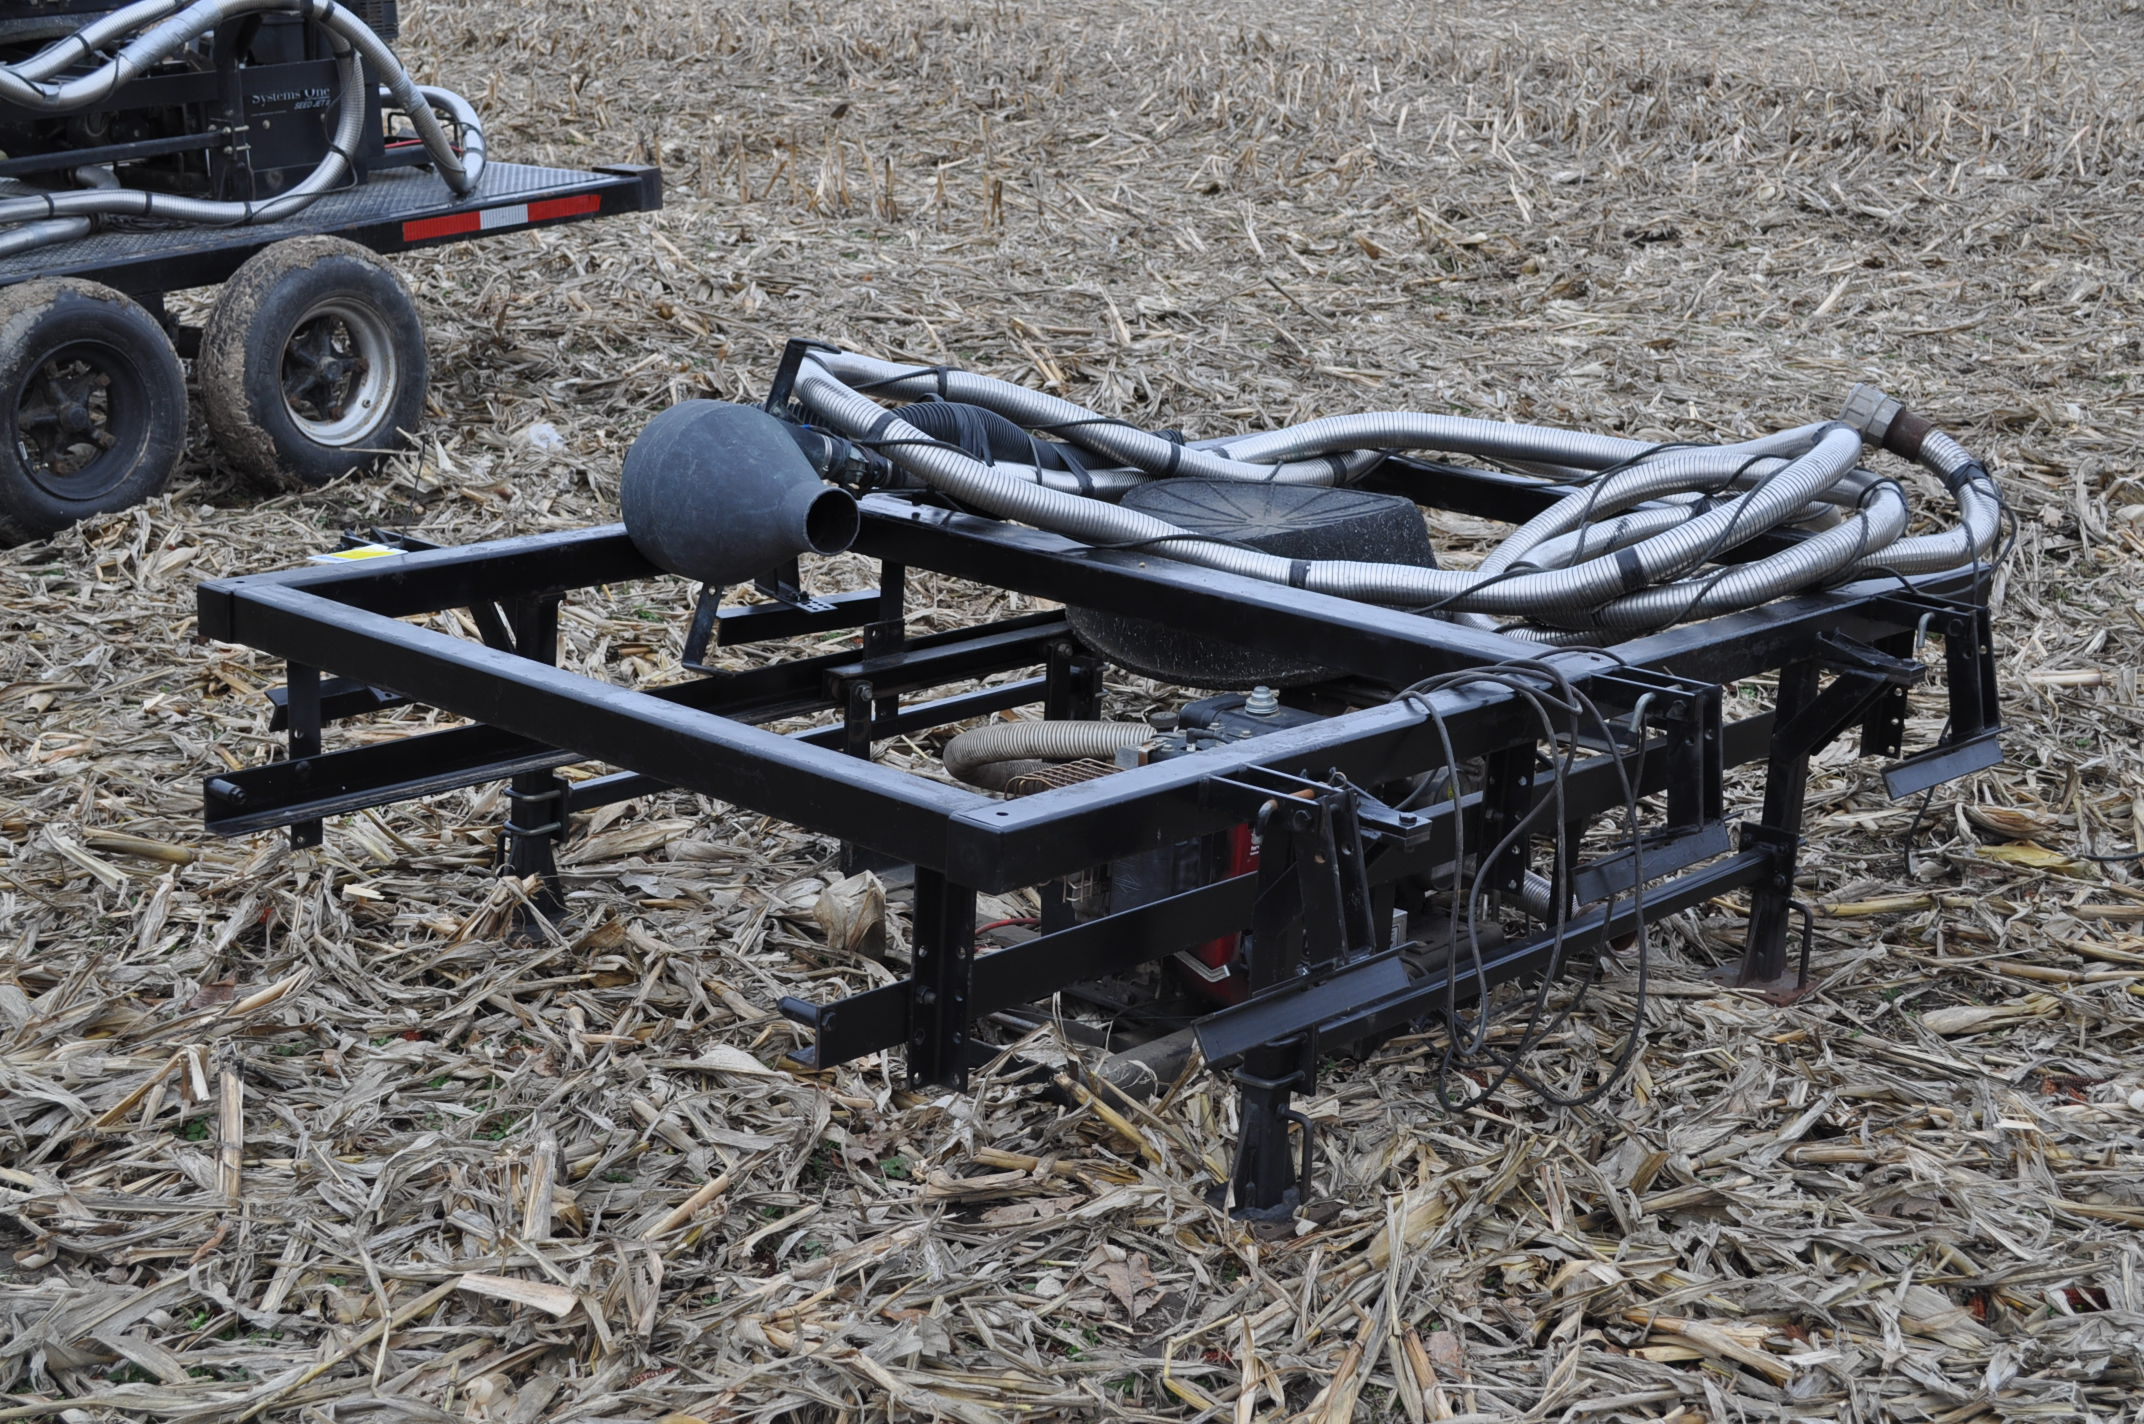 Yetter Seed Jet II air transfer seed tender, holds 2 pro boxes, Briggs & Stratton gas engine - Image 2 of 9